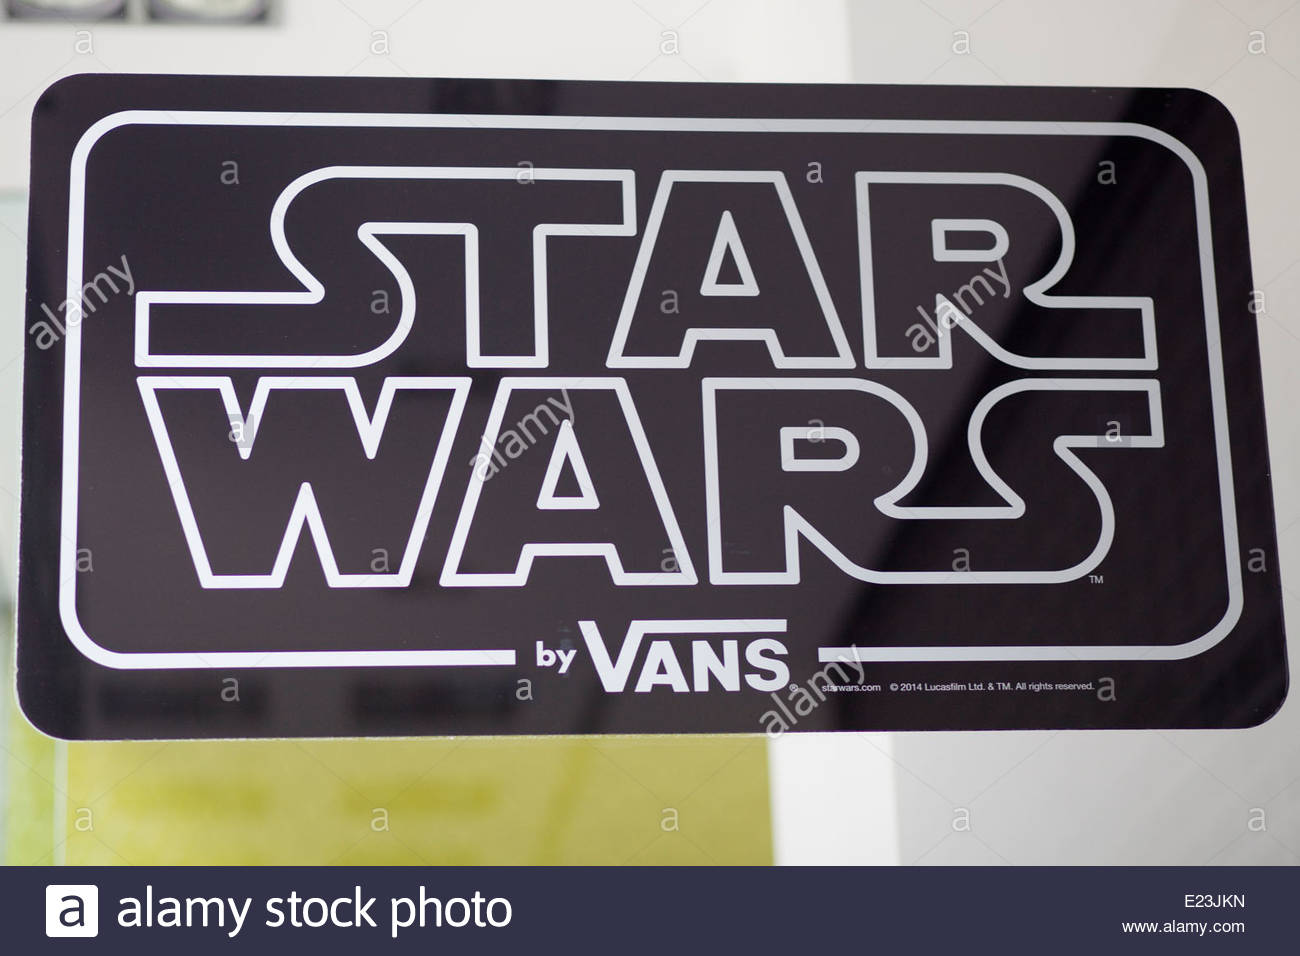 Star Wars by Vans Sign in a shop window - Stock Image